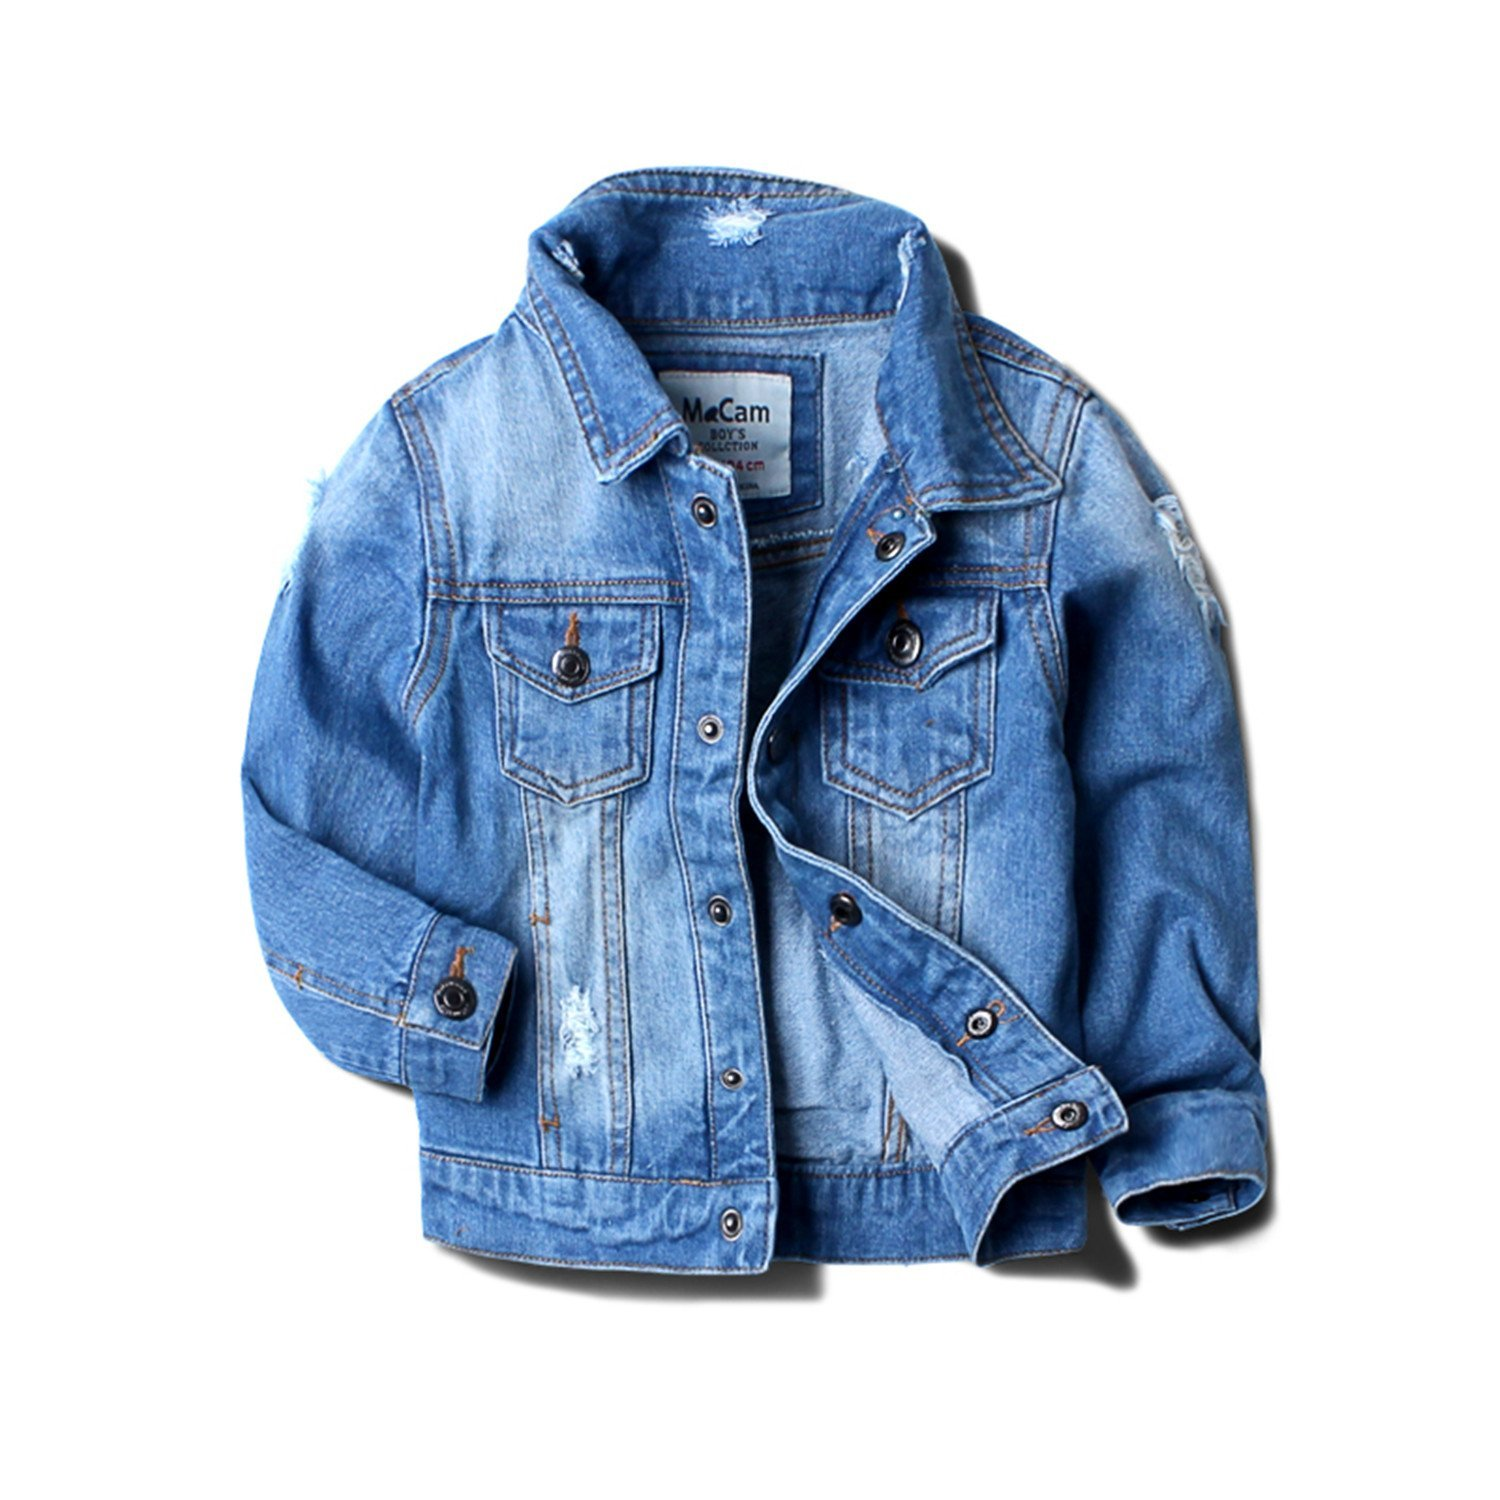 9a46941e9 Get Quotations · Baby Boy Denim Jacket Leisure Coat Children Kids Jeans  Boys Girls Ripped Jeans Jackets Kids Denim